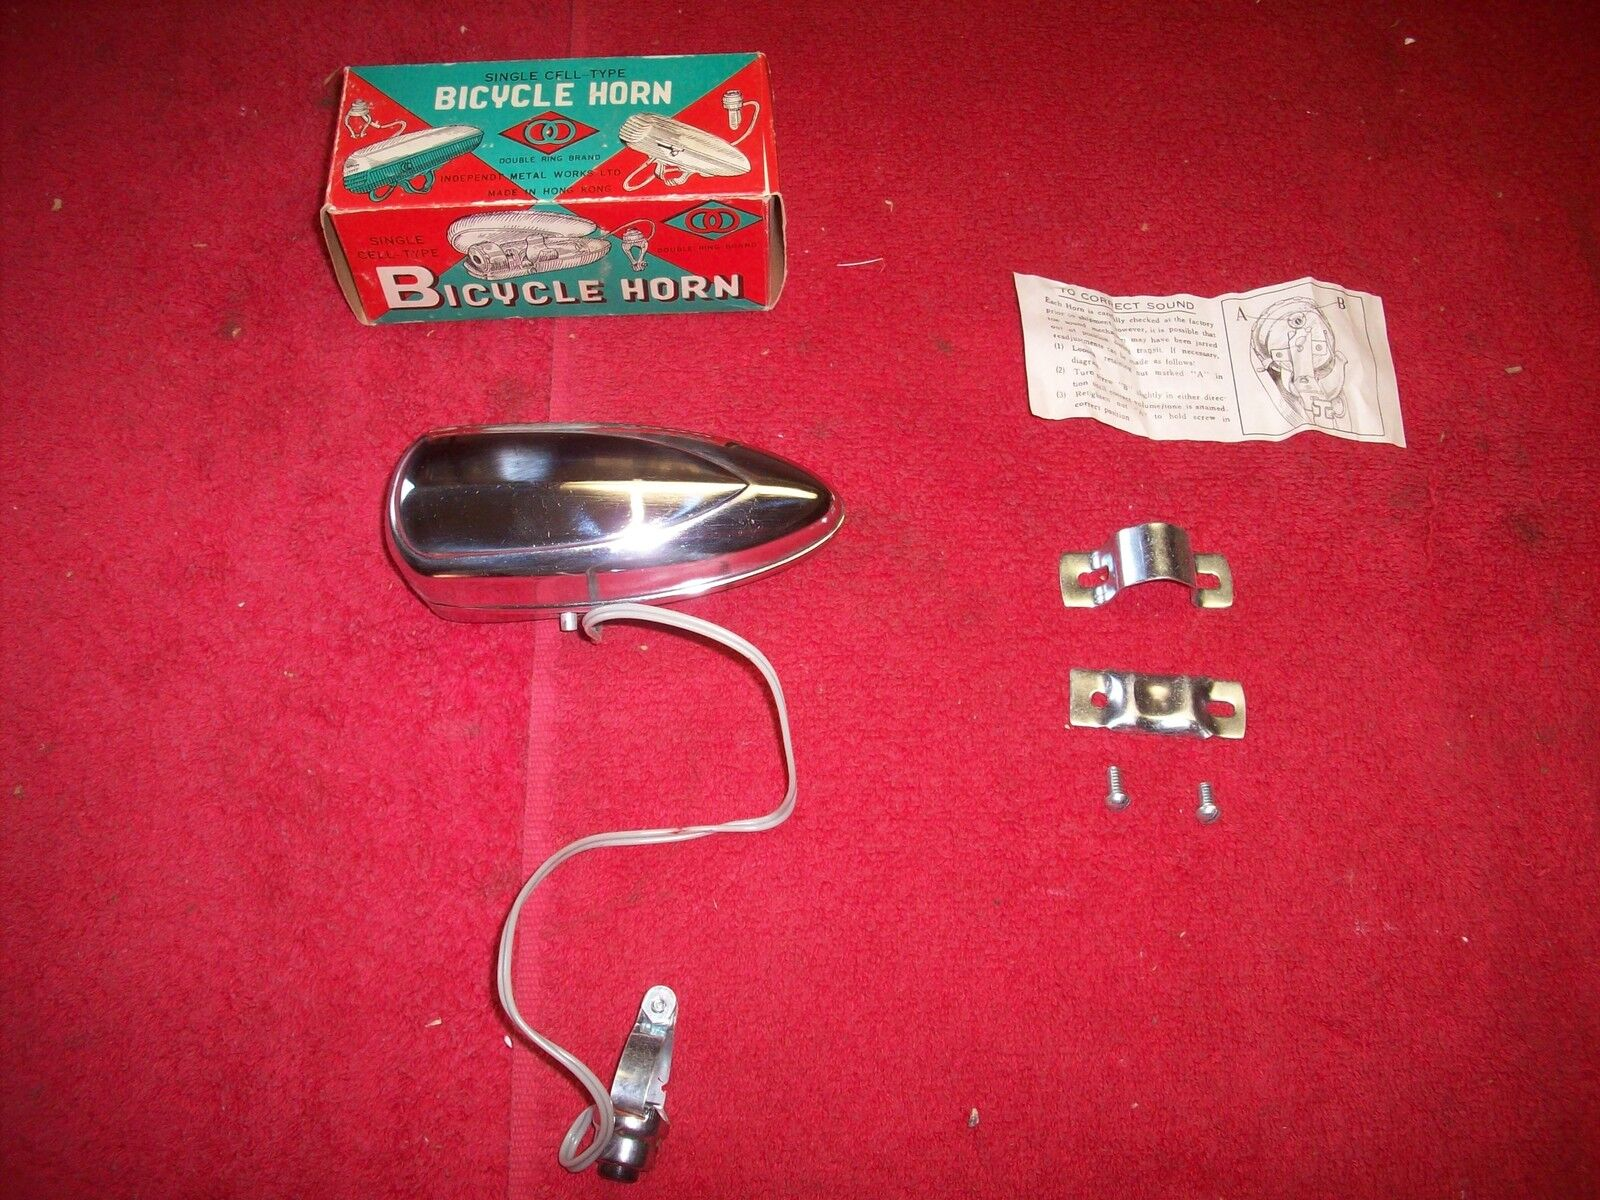 Vintage 1960's Bicycle  Electric Battery Horn Made in Hong Kong new in box  great selection & quick delivery